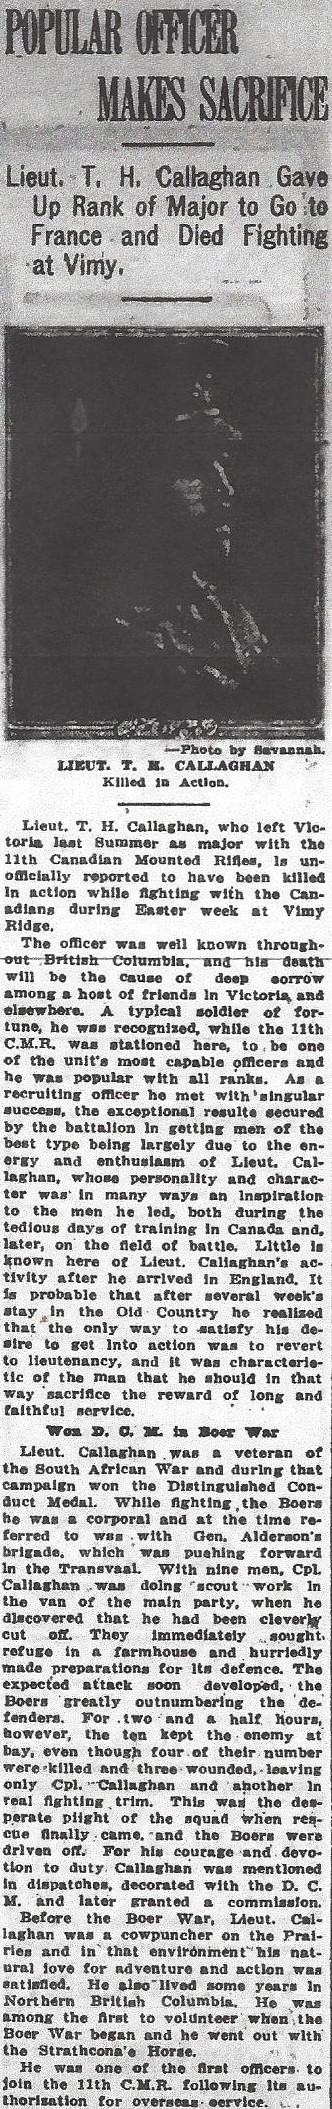 Newspaper clipping – From the Daily Colonist of May 12, 1917. Image taken from web address of http://archive.org/stream/dailycolonist59y132uvic#page/n0/mode/1up